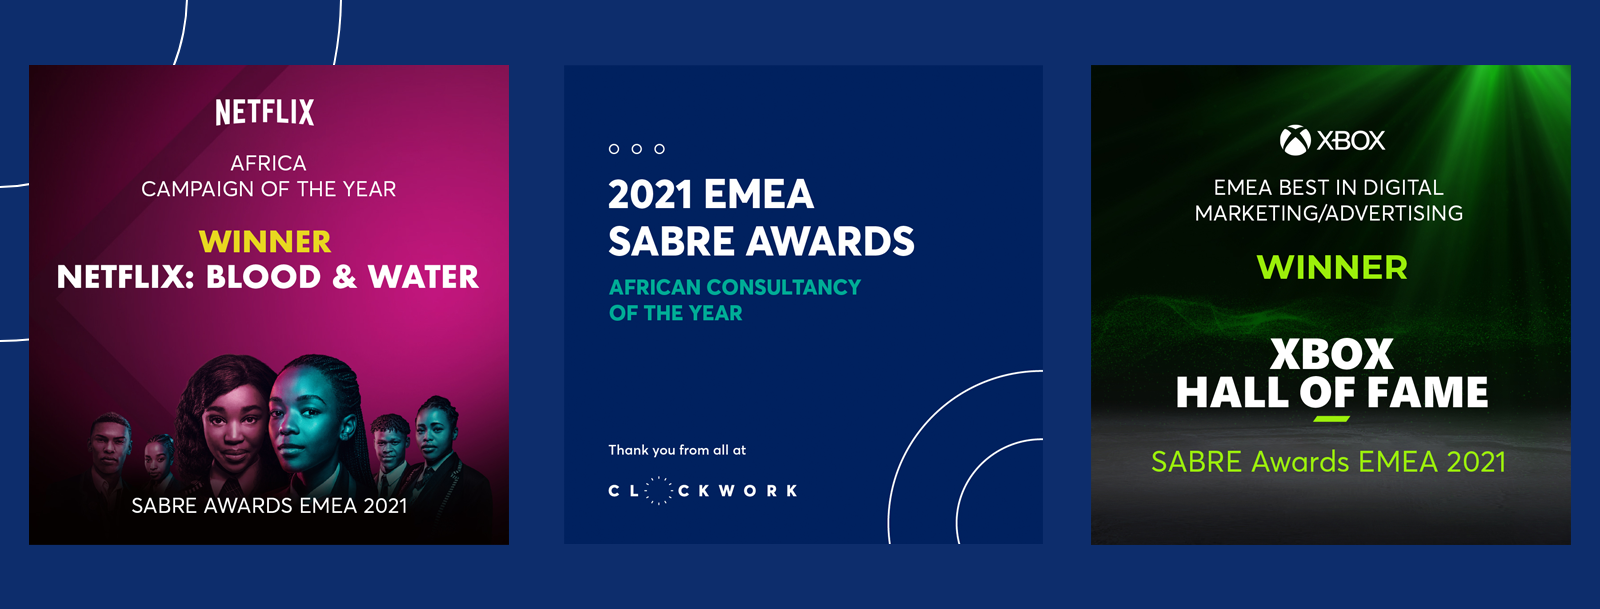 CLOCKWORK NAMED 'AFRICAN CONSULTANCY OF THE YEAR' AT THE SABRE AWARDS EMEA 2021